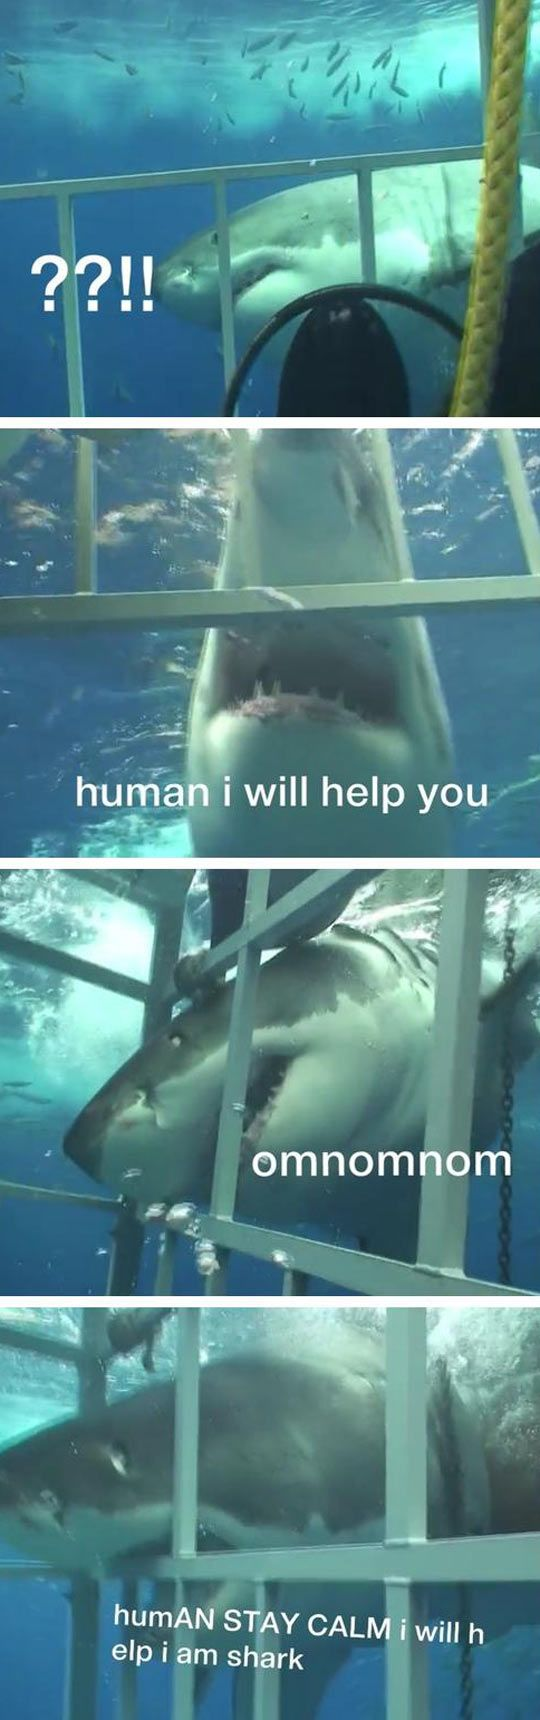 shark-biting-water-cage-helping